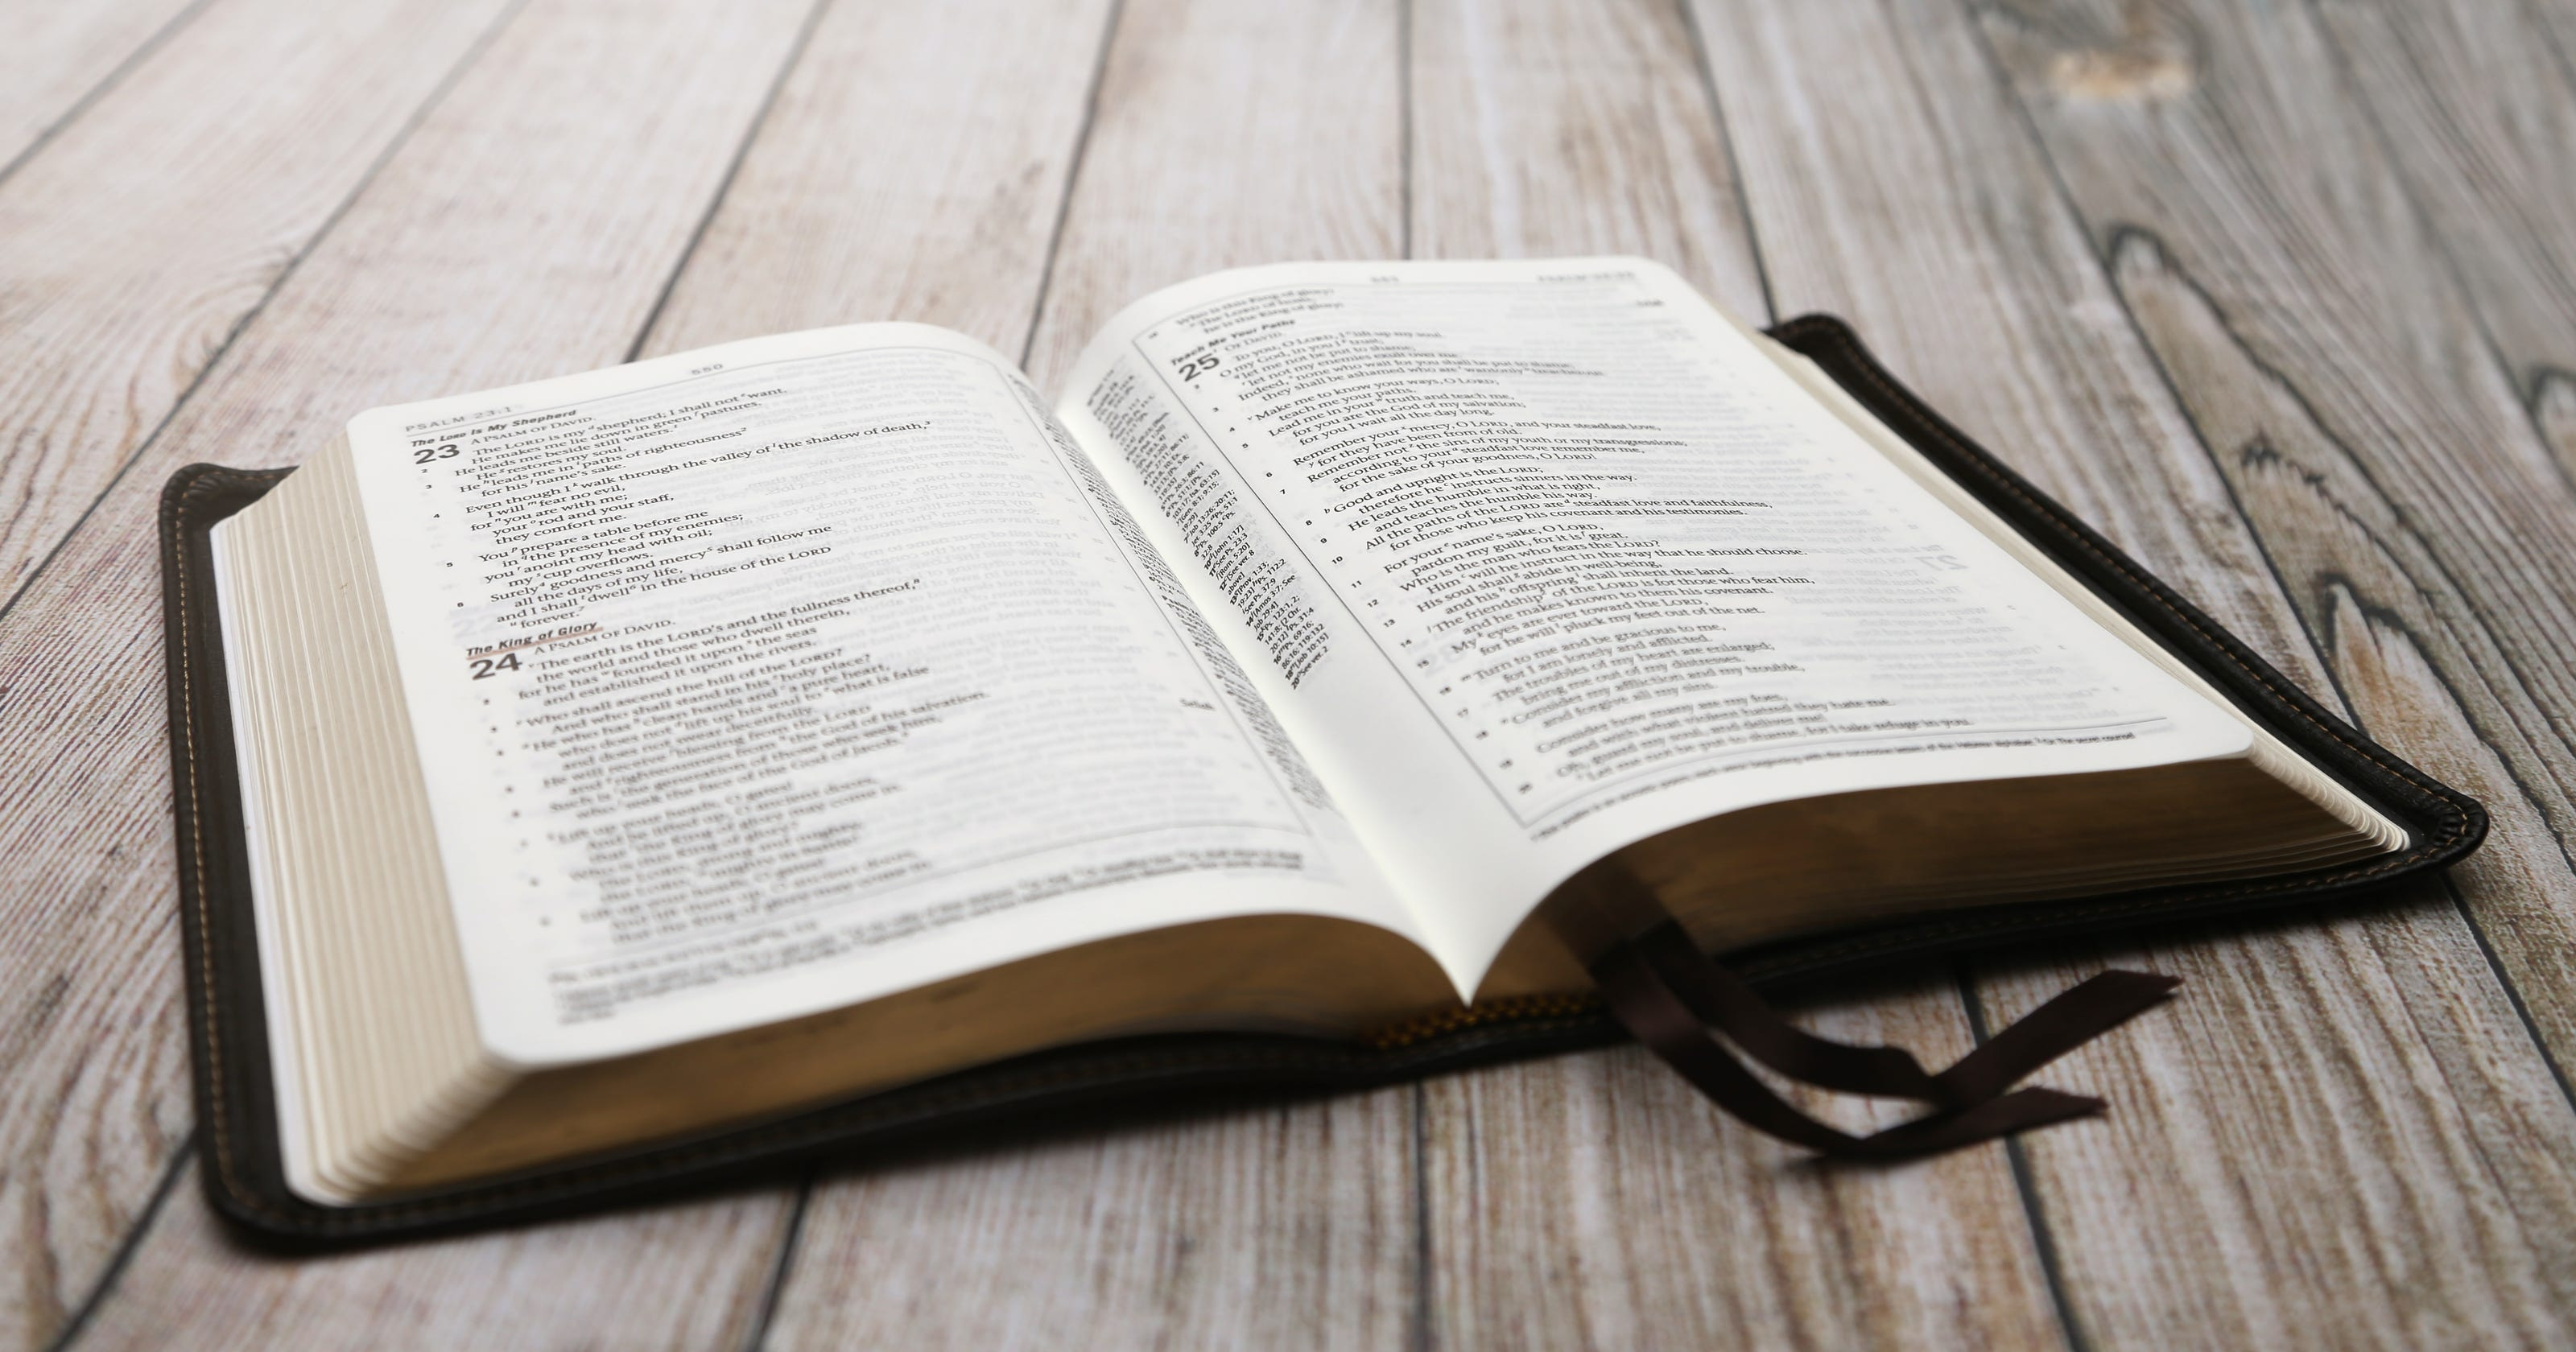 Kentucky high school will not offer Bible literacy course this year